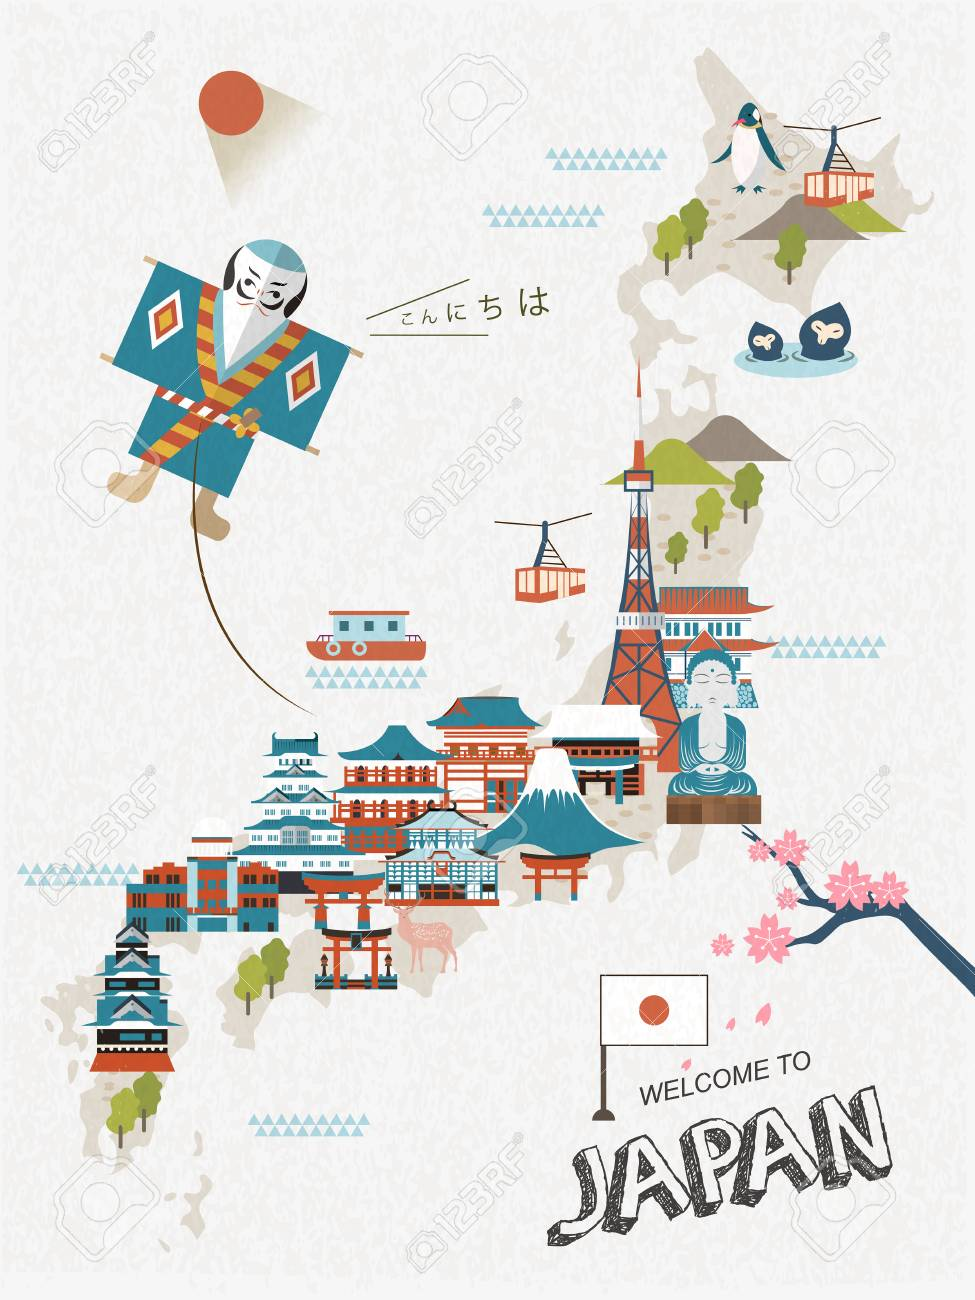 Poster design japan - Lovely Japan Travel Poster Design With Attractions Stock Vector 50046087